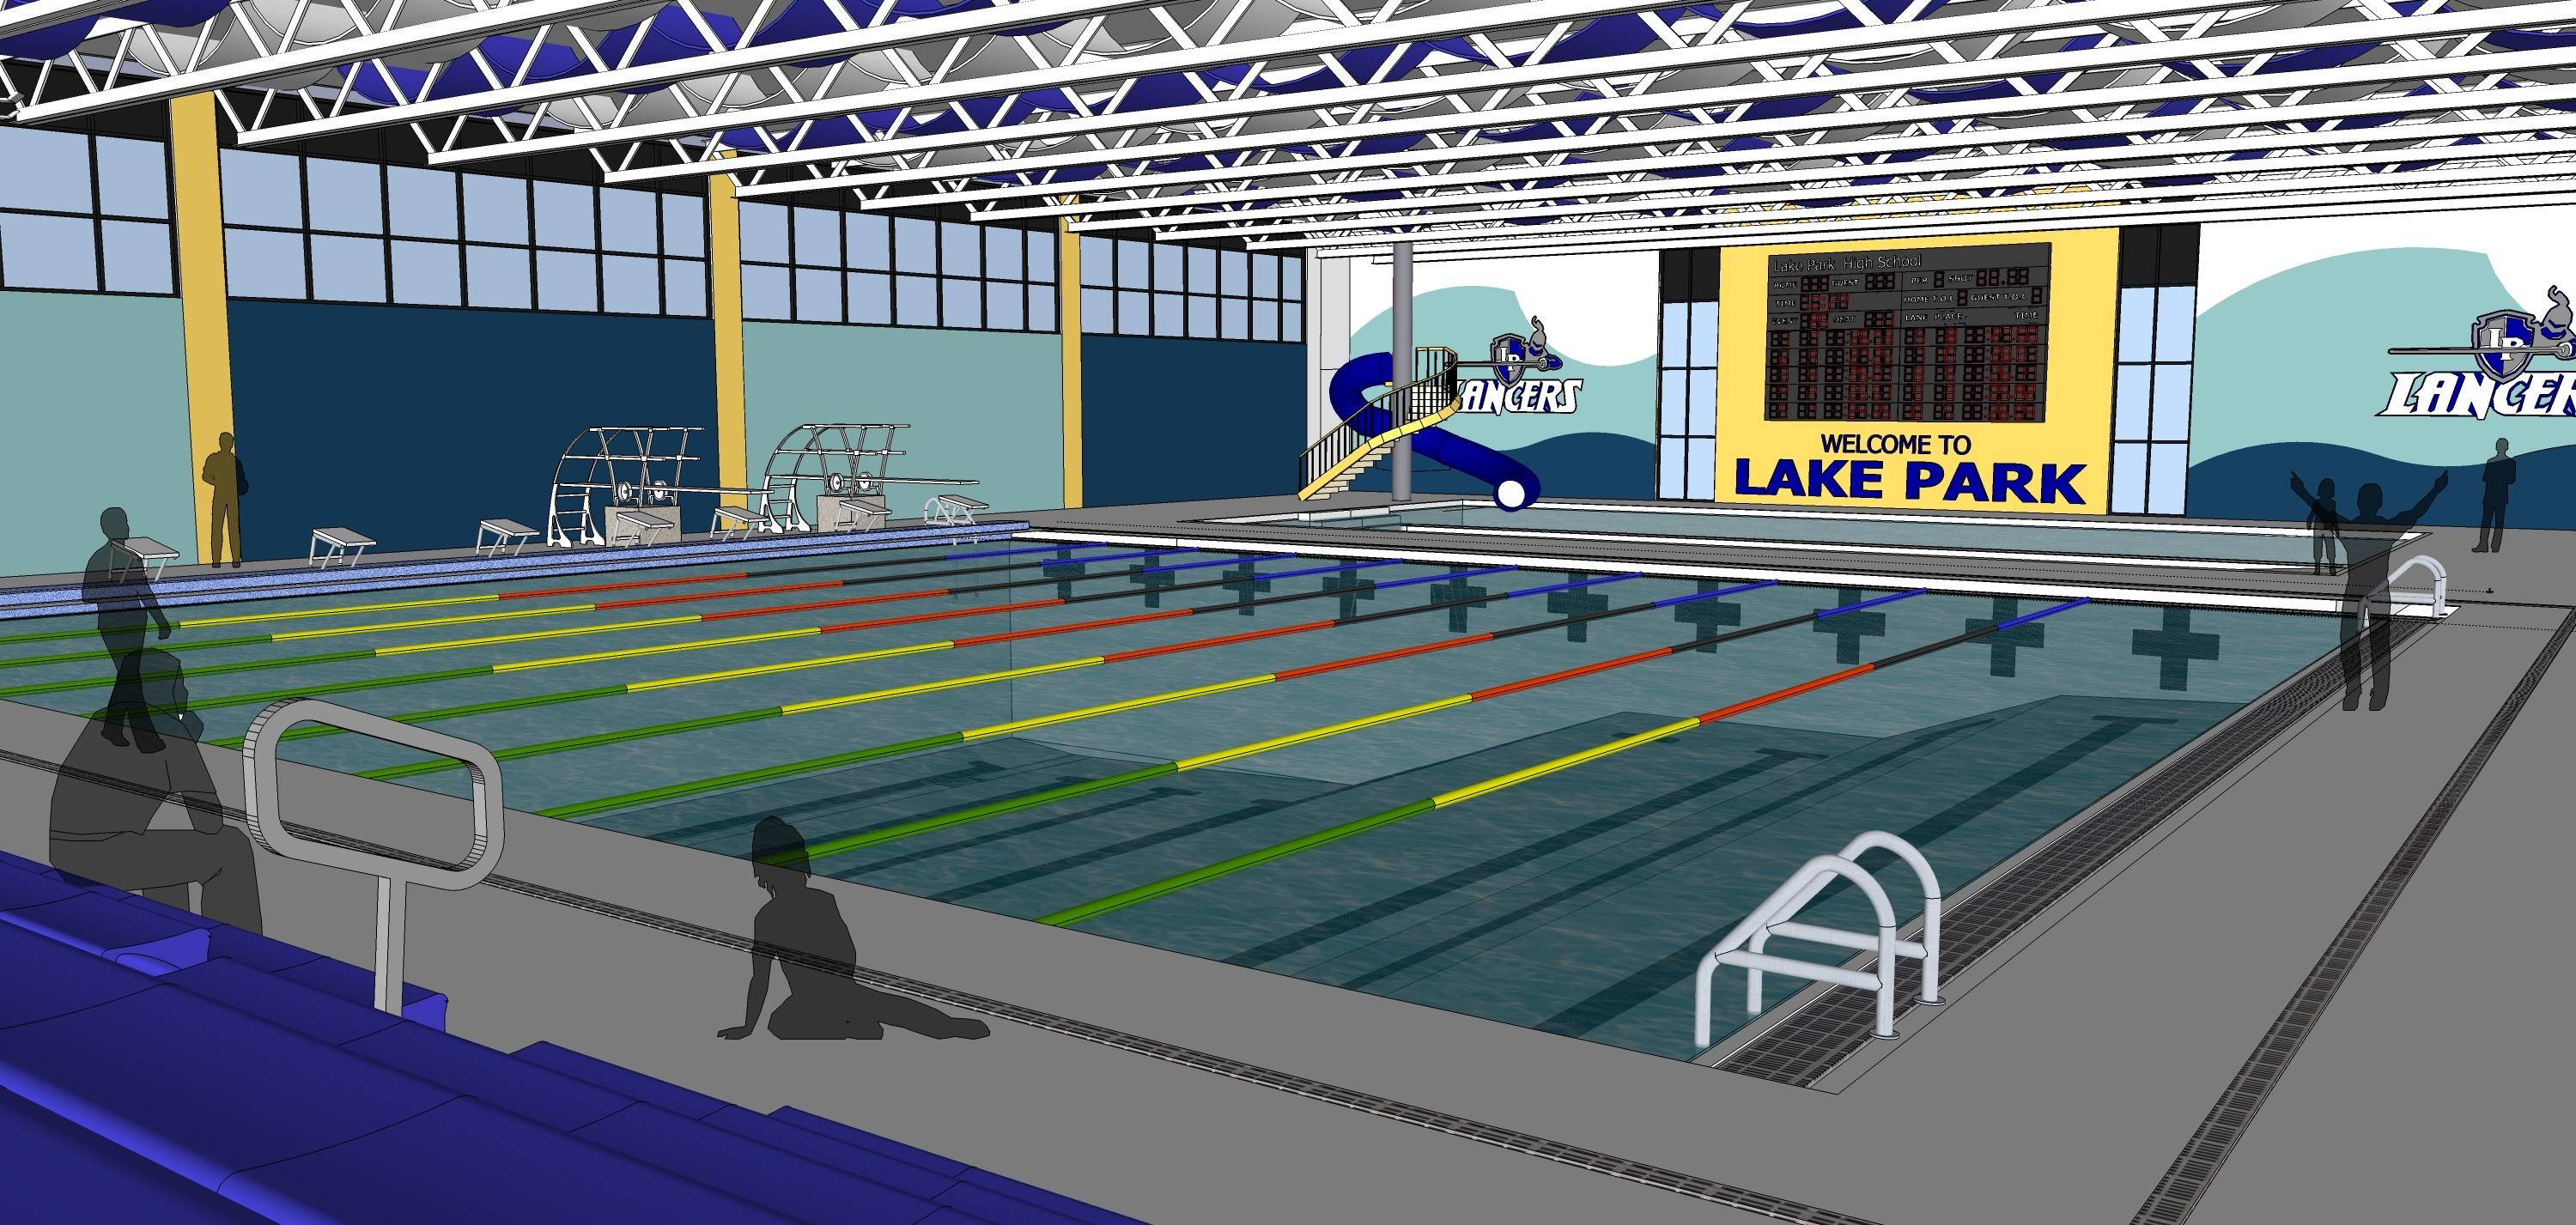 Lake Park High School District 108 is asking voters to fund the construction and operation of an aquatic facility that could be built at the school's east campus by fall 2015. School officials say they have heard from supporters and opponents of the plan before two referendum questions about it appear on the March 18 primary ballot.